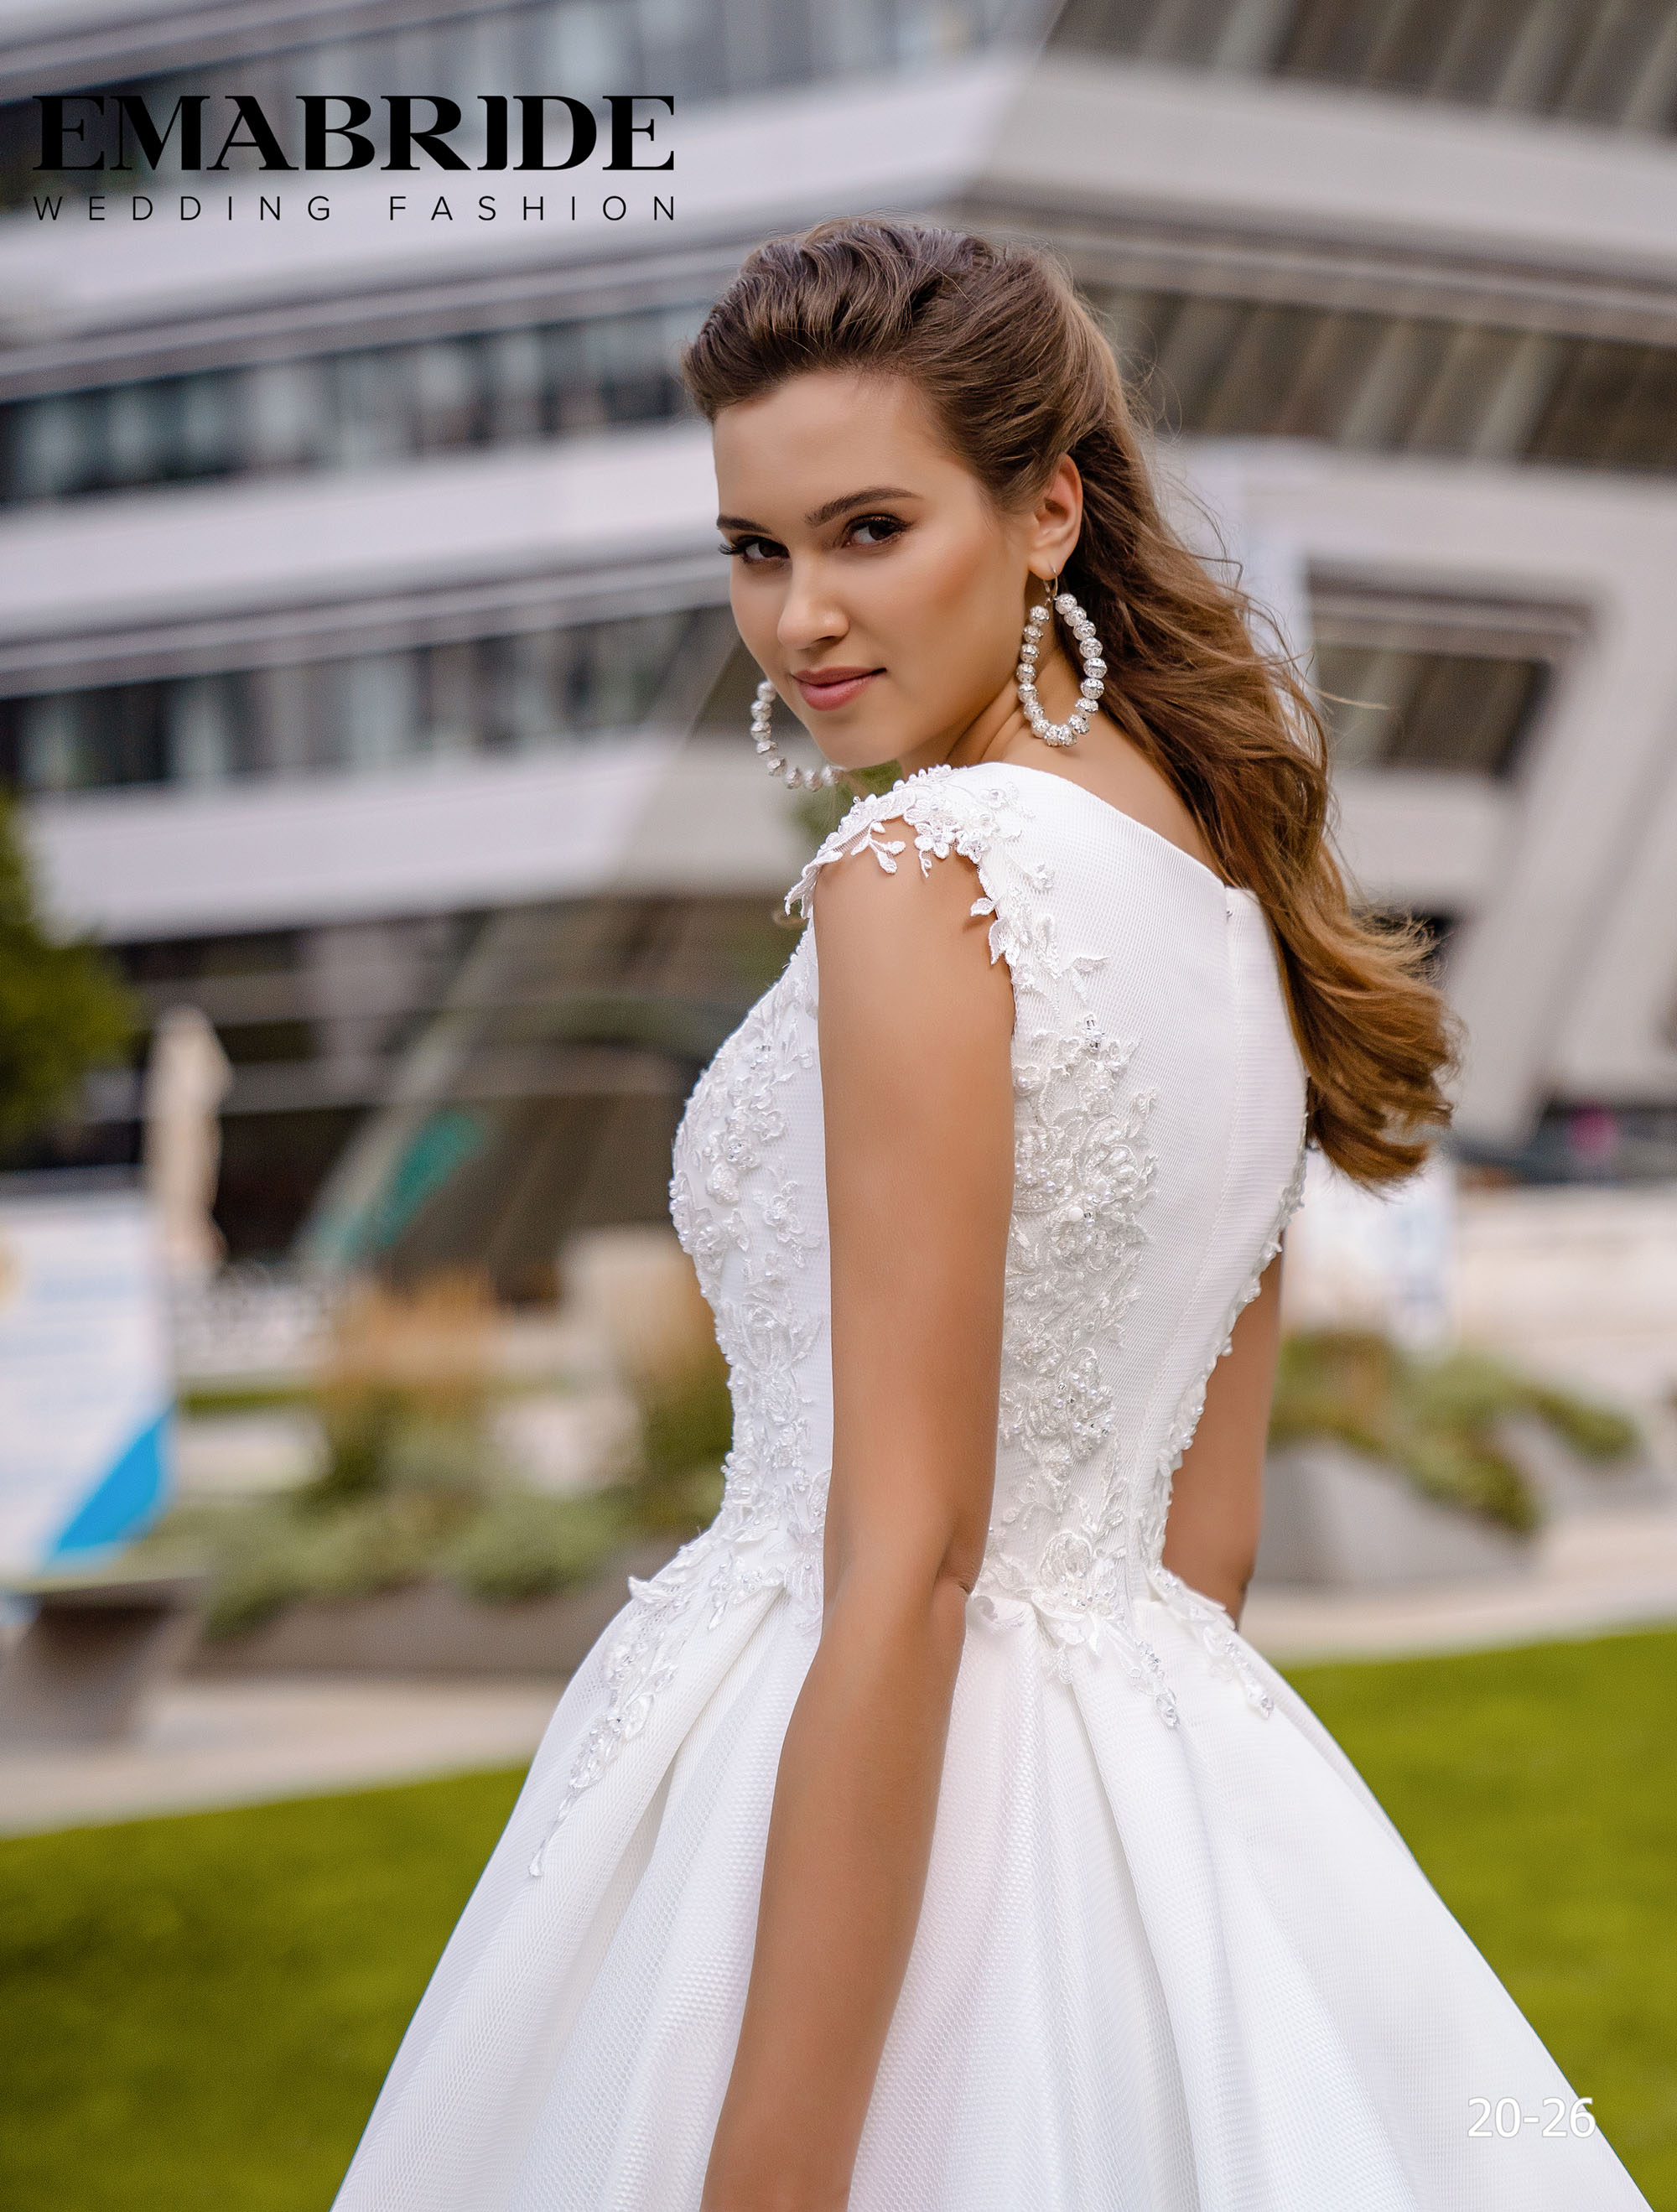 Model 20-26 | Buy wedding dresses wholesale by the ukrainian manufacturer Emabride-2